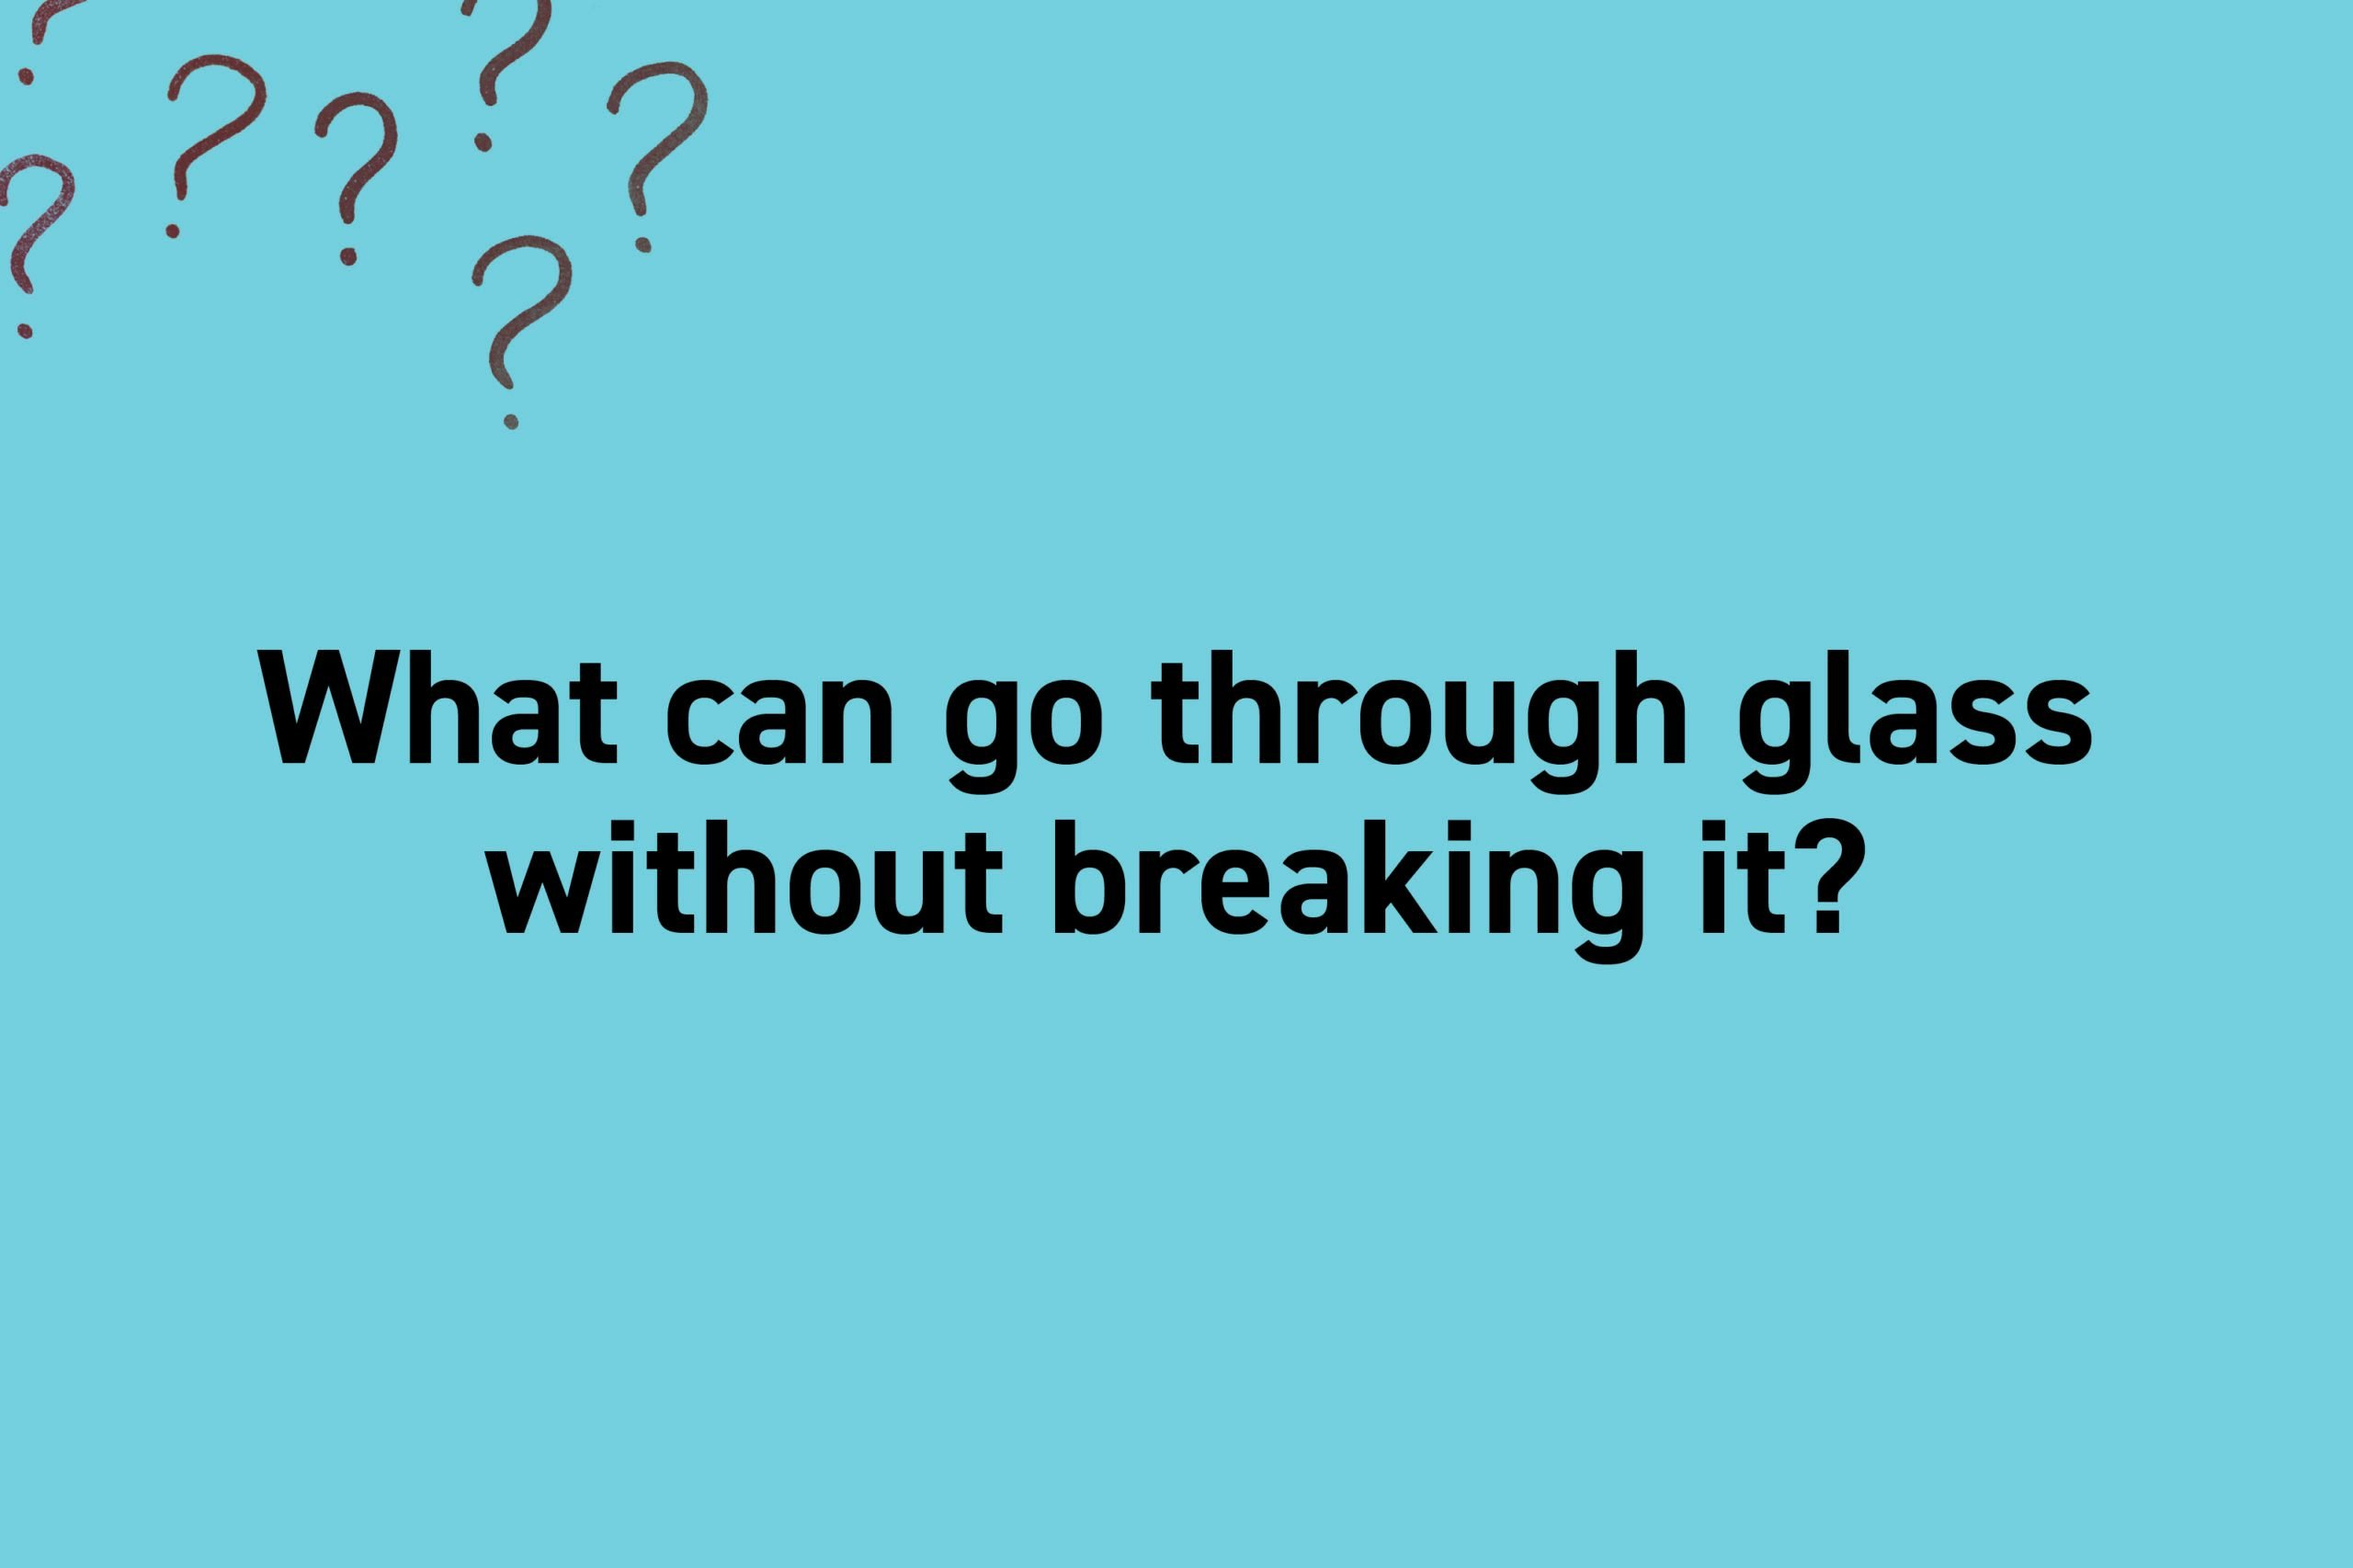 What can go through glass without breaking it?